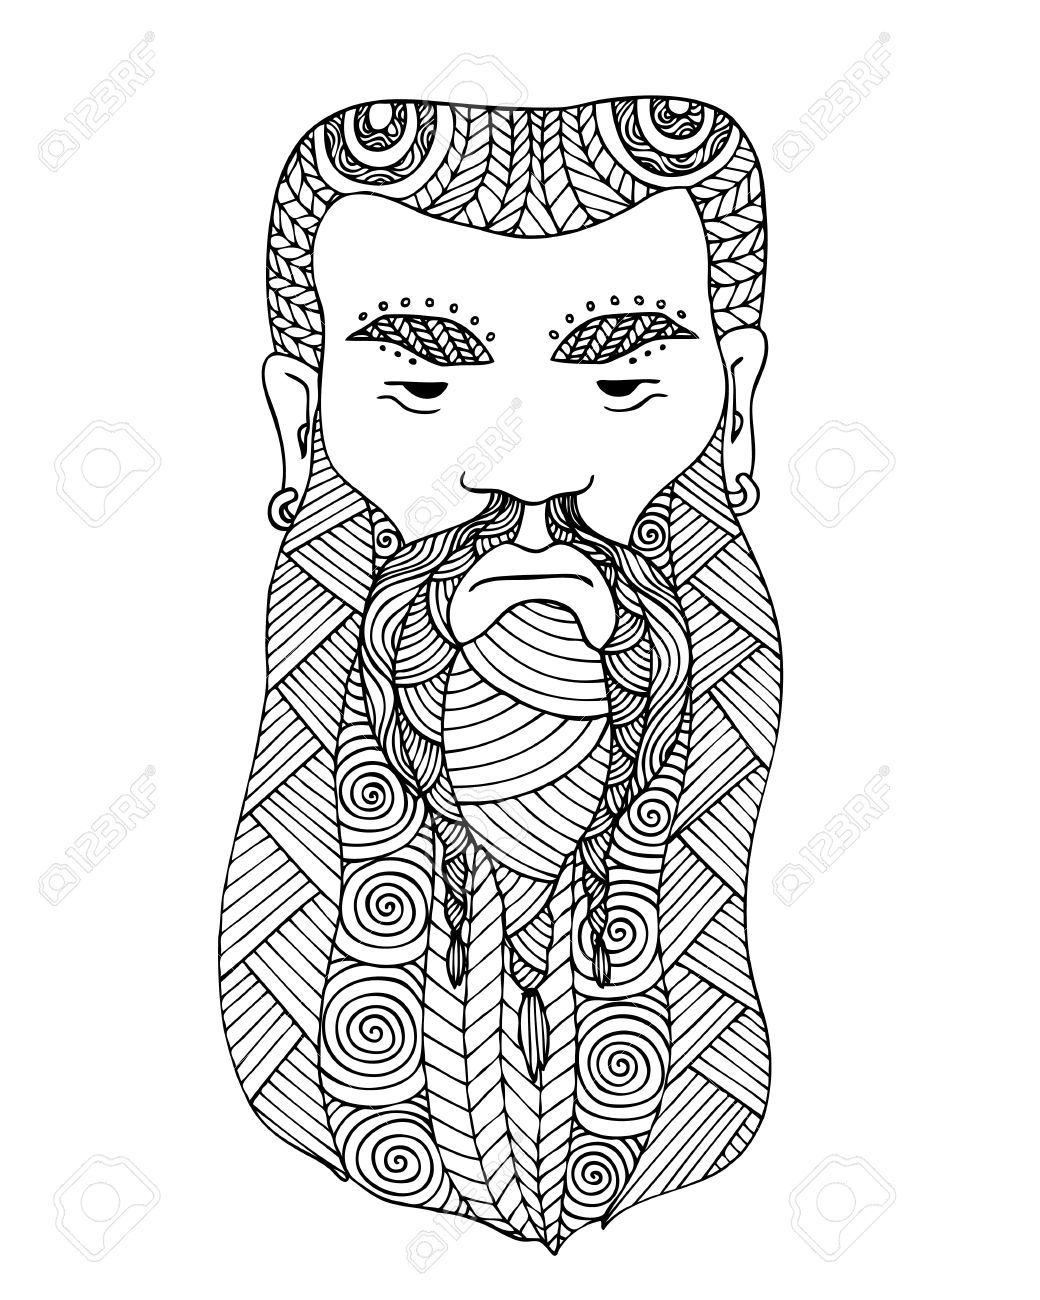 Adult Coloring Book Page Design With The Face Of A Viking Viking